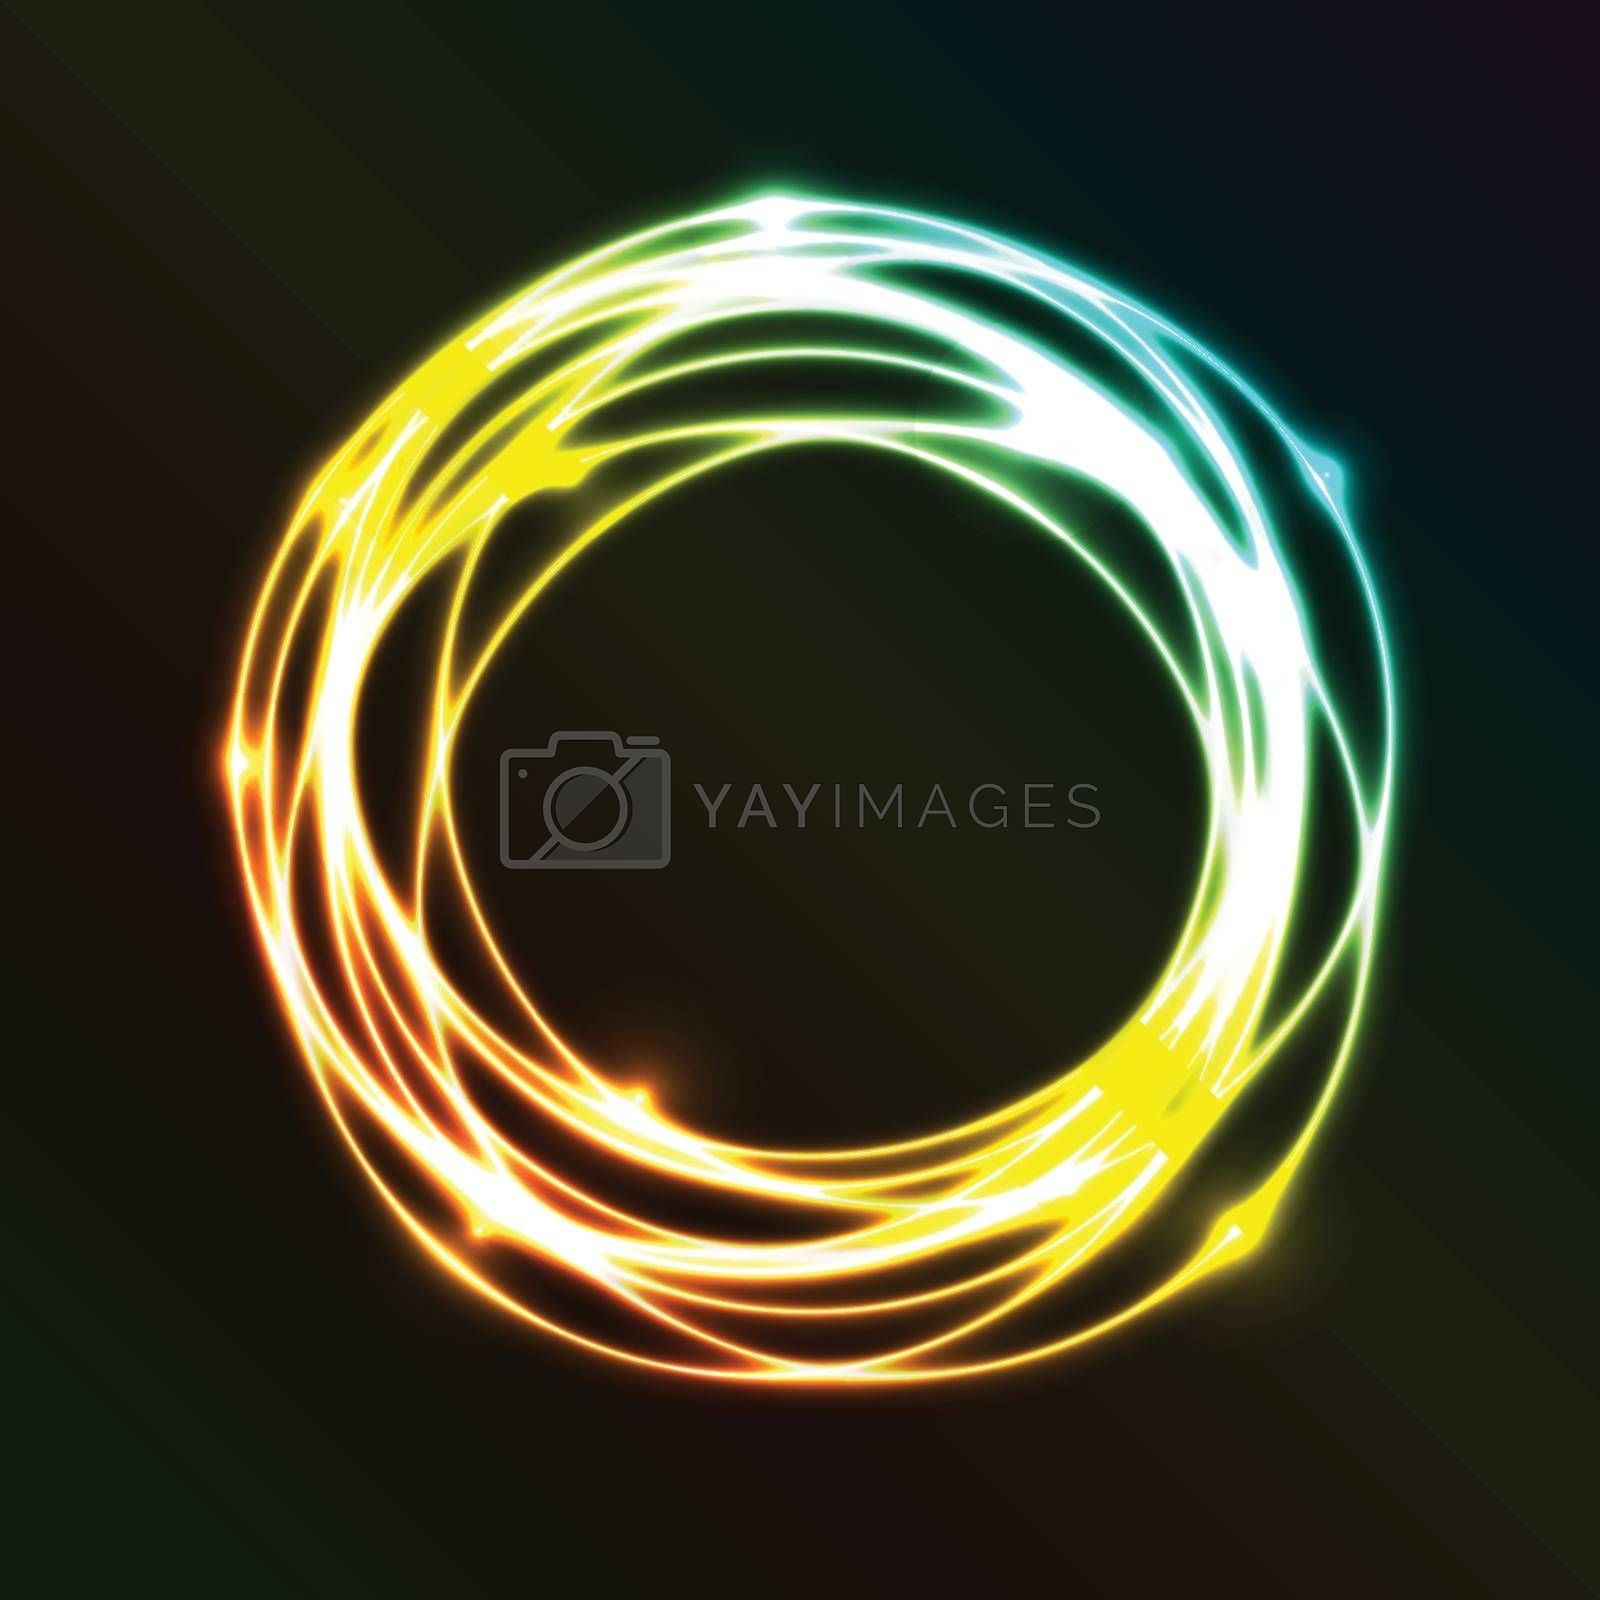 Abstract background with colorful plasma circle effect, stock vector